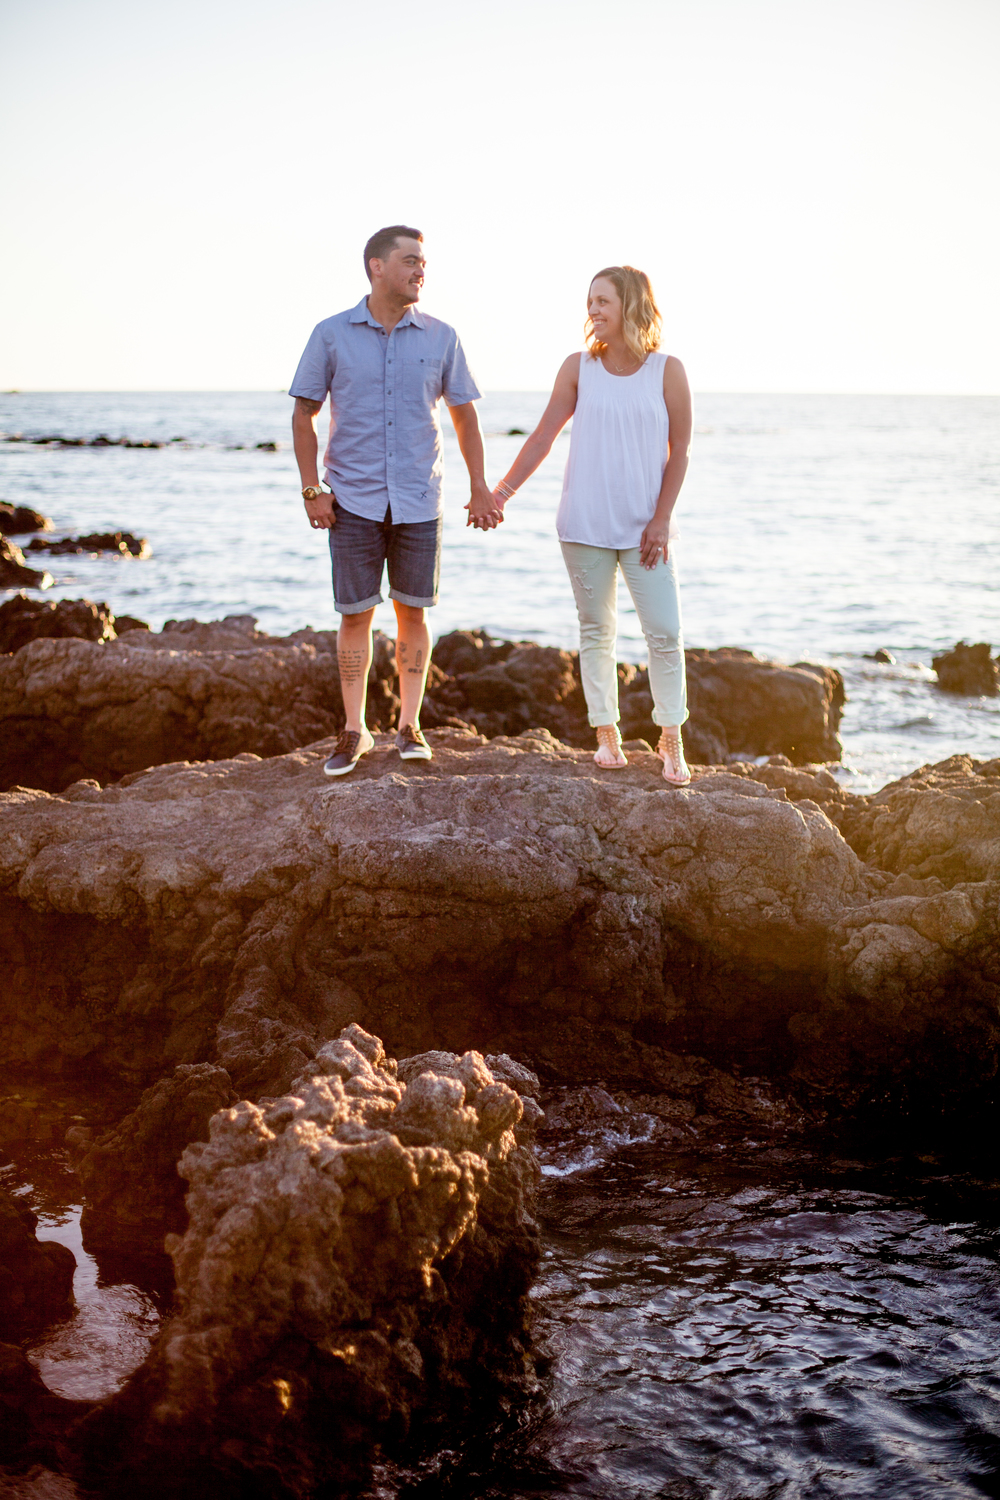 big island hawaii engagement photography 20150529183335-1.jpg